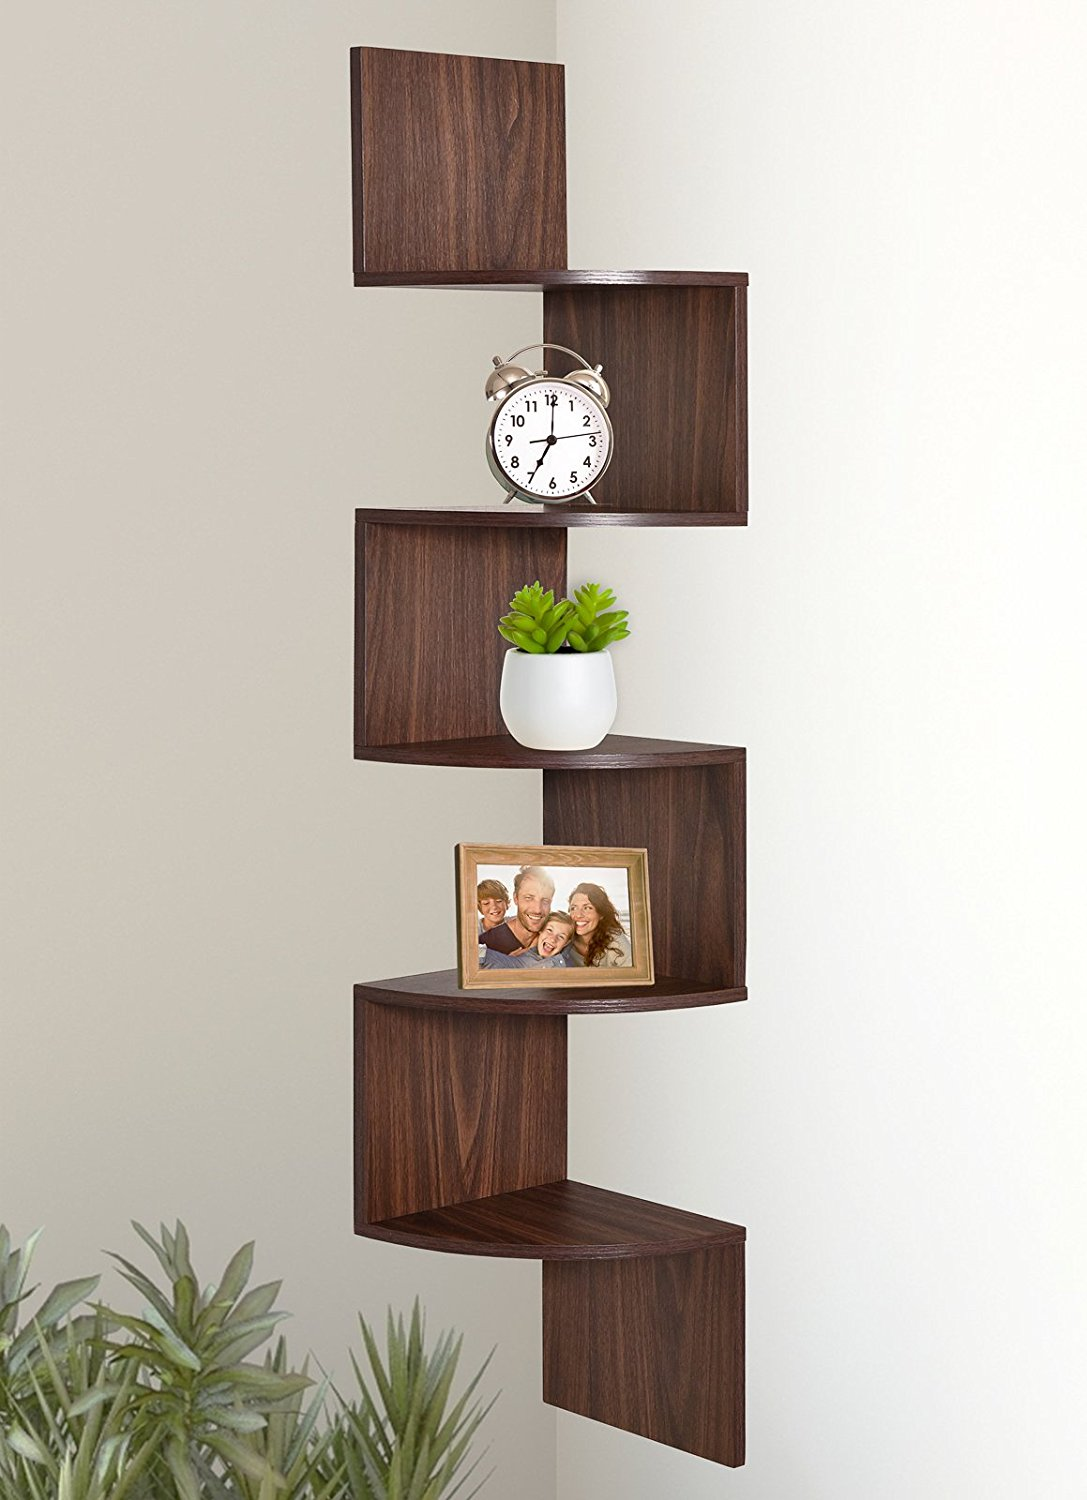 Best Kitchen Wall Shelves   HelloFoods Top 10 Wall Mounted Storage,  Shelving, Organizer Racks